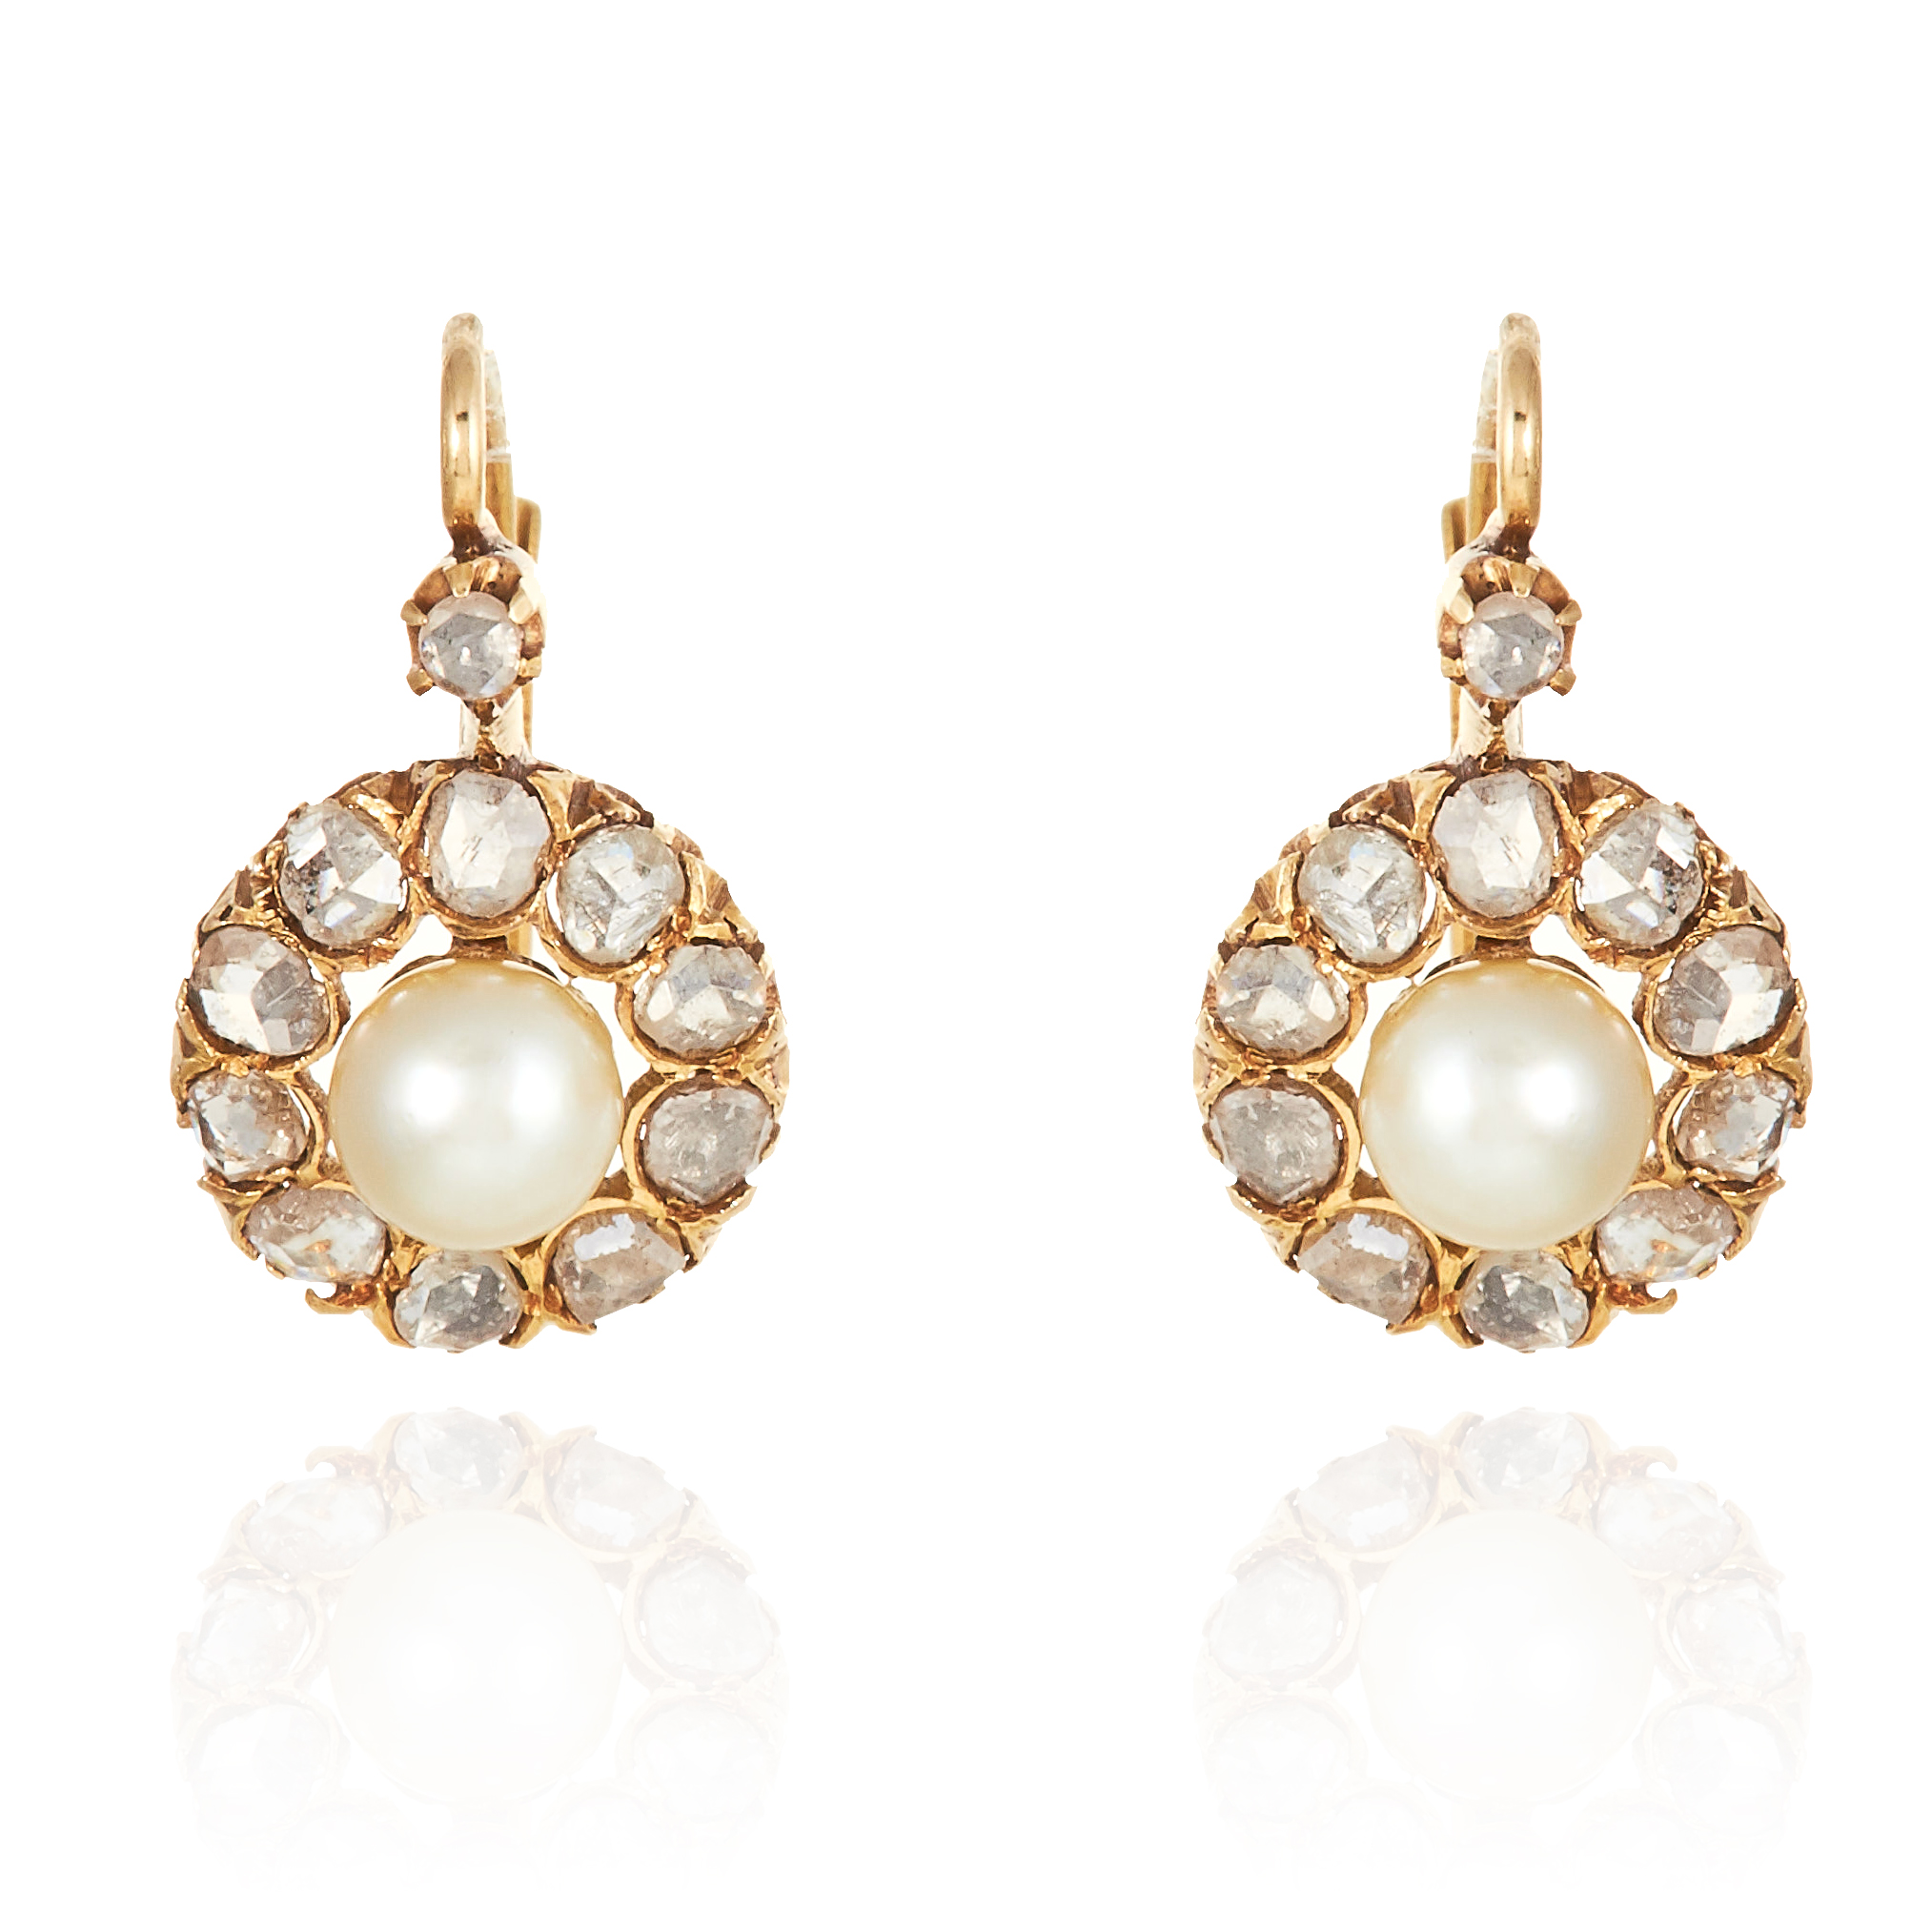 Los 49 - A PAIR OF ANTIQUE PEARL AND DIAMOND CLUSTER EARRINGS in yellow gold, set with a central pearl of